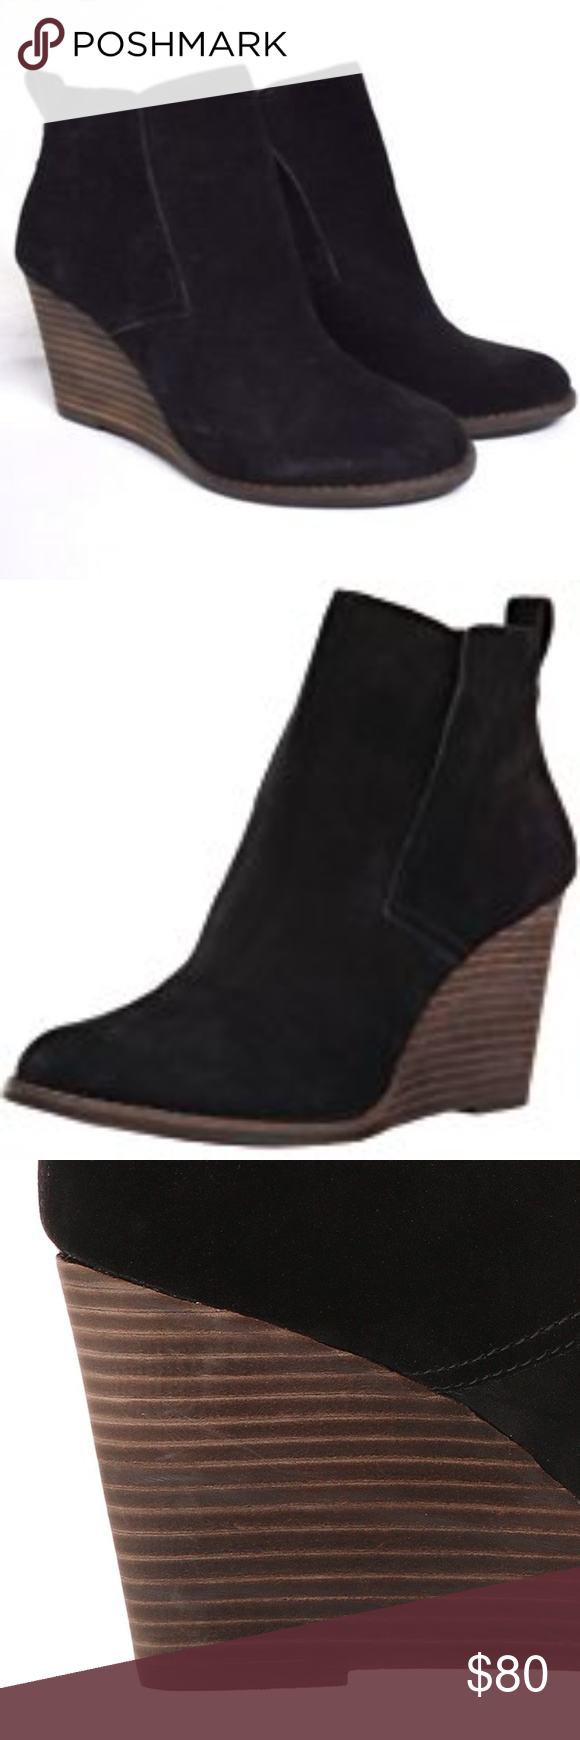 ff33779420a4 Lucky Brand Yoniana Wedge Bootie in Black - NWT Buttery soft suede wedge by Lucky  Brand